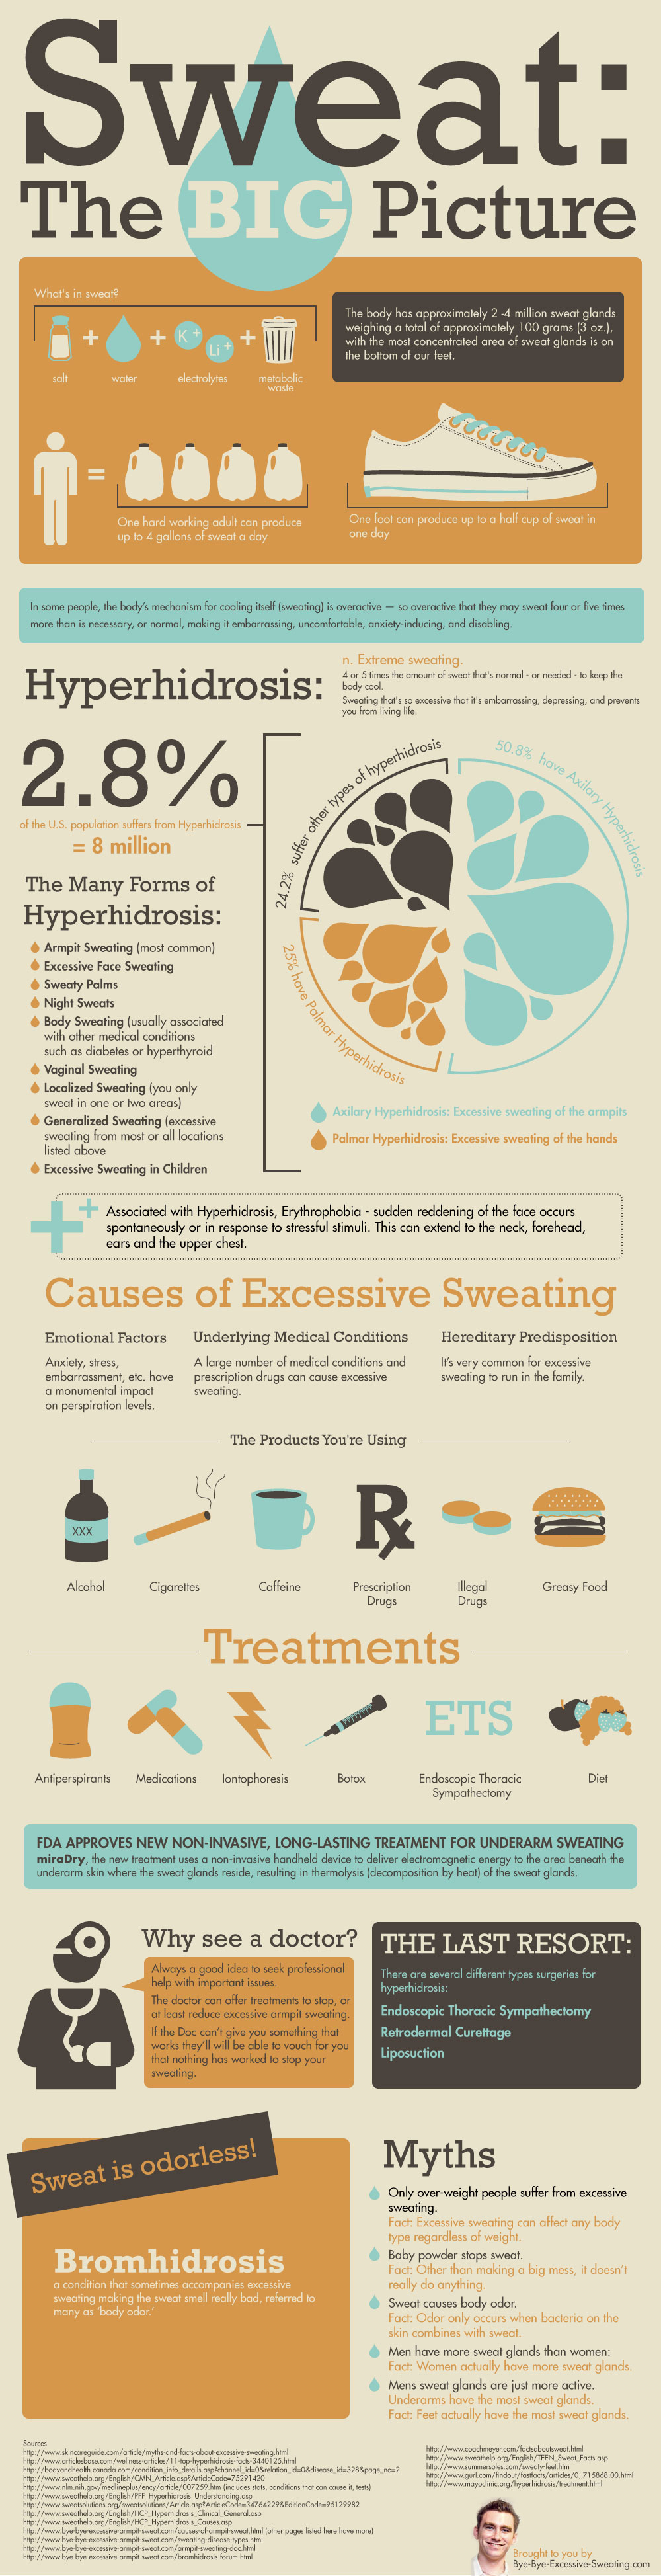 Step excessive sweating